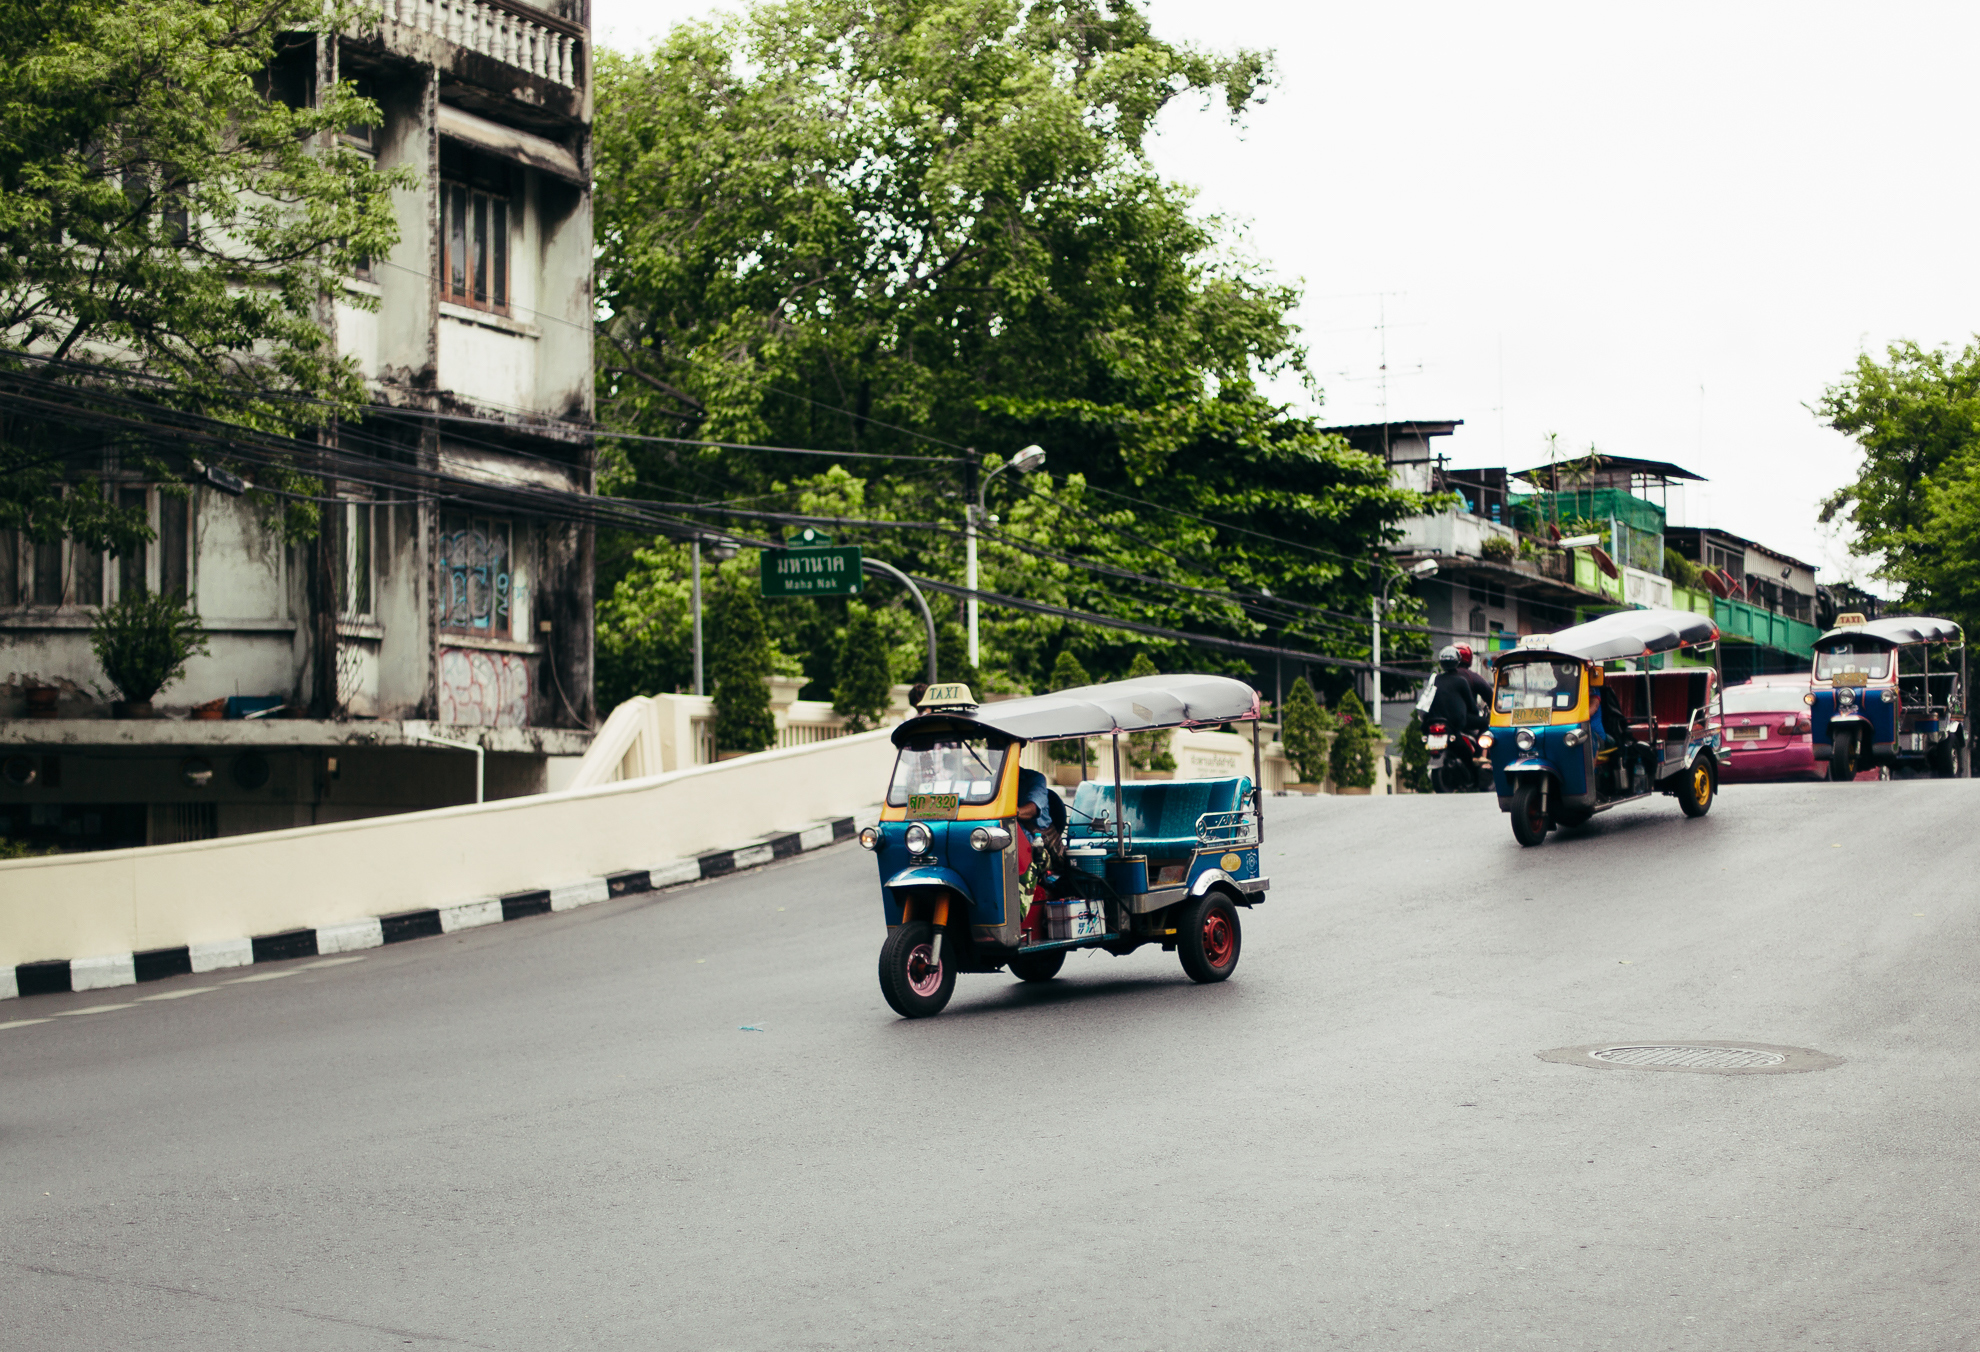 Taxis ride down the street